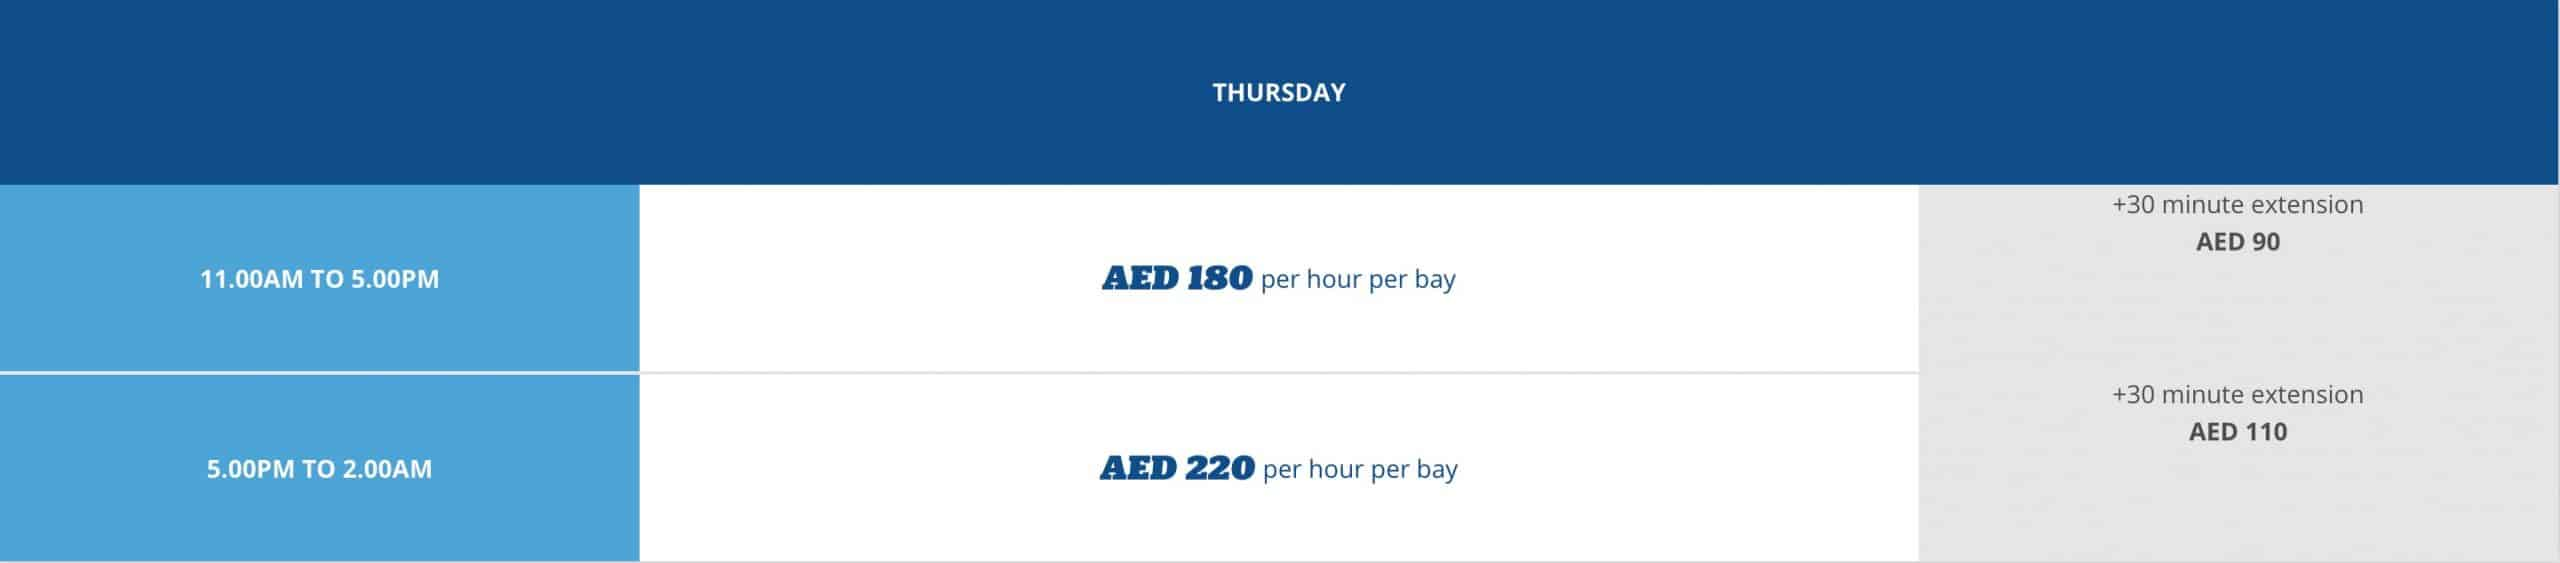 THURSDAY: 11 am – 5 pm: AED 180 PER HOUR PER BAY NOTE: AED 90 FOR EXTRA 30 MINS 5 pm – 2 am: AED 220 PER HOUR PER BAY NOTE: AED 110 FOR 30 EXTRA MINS